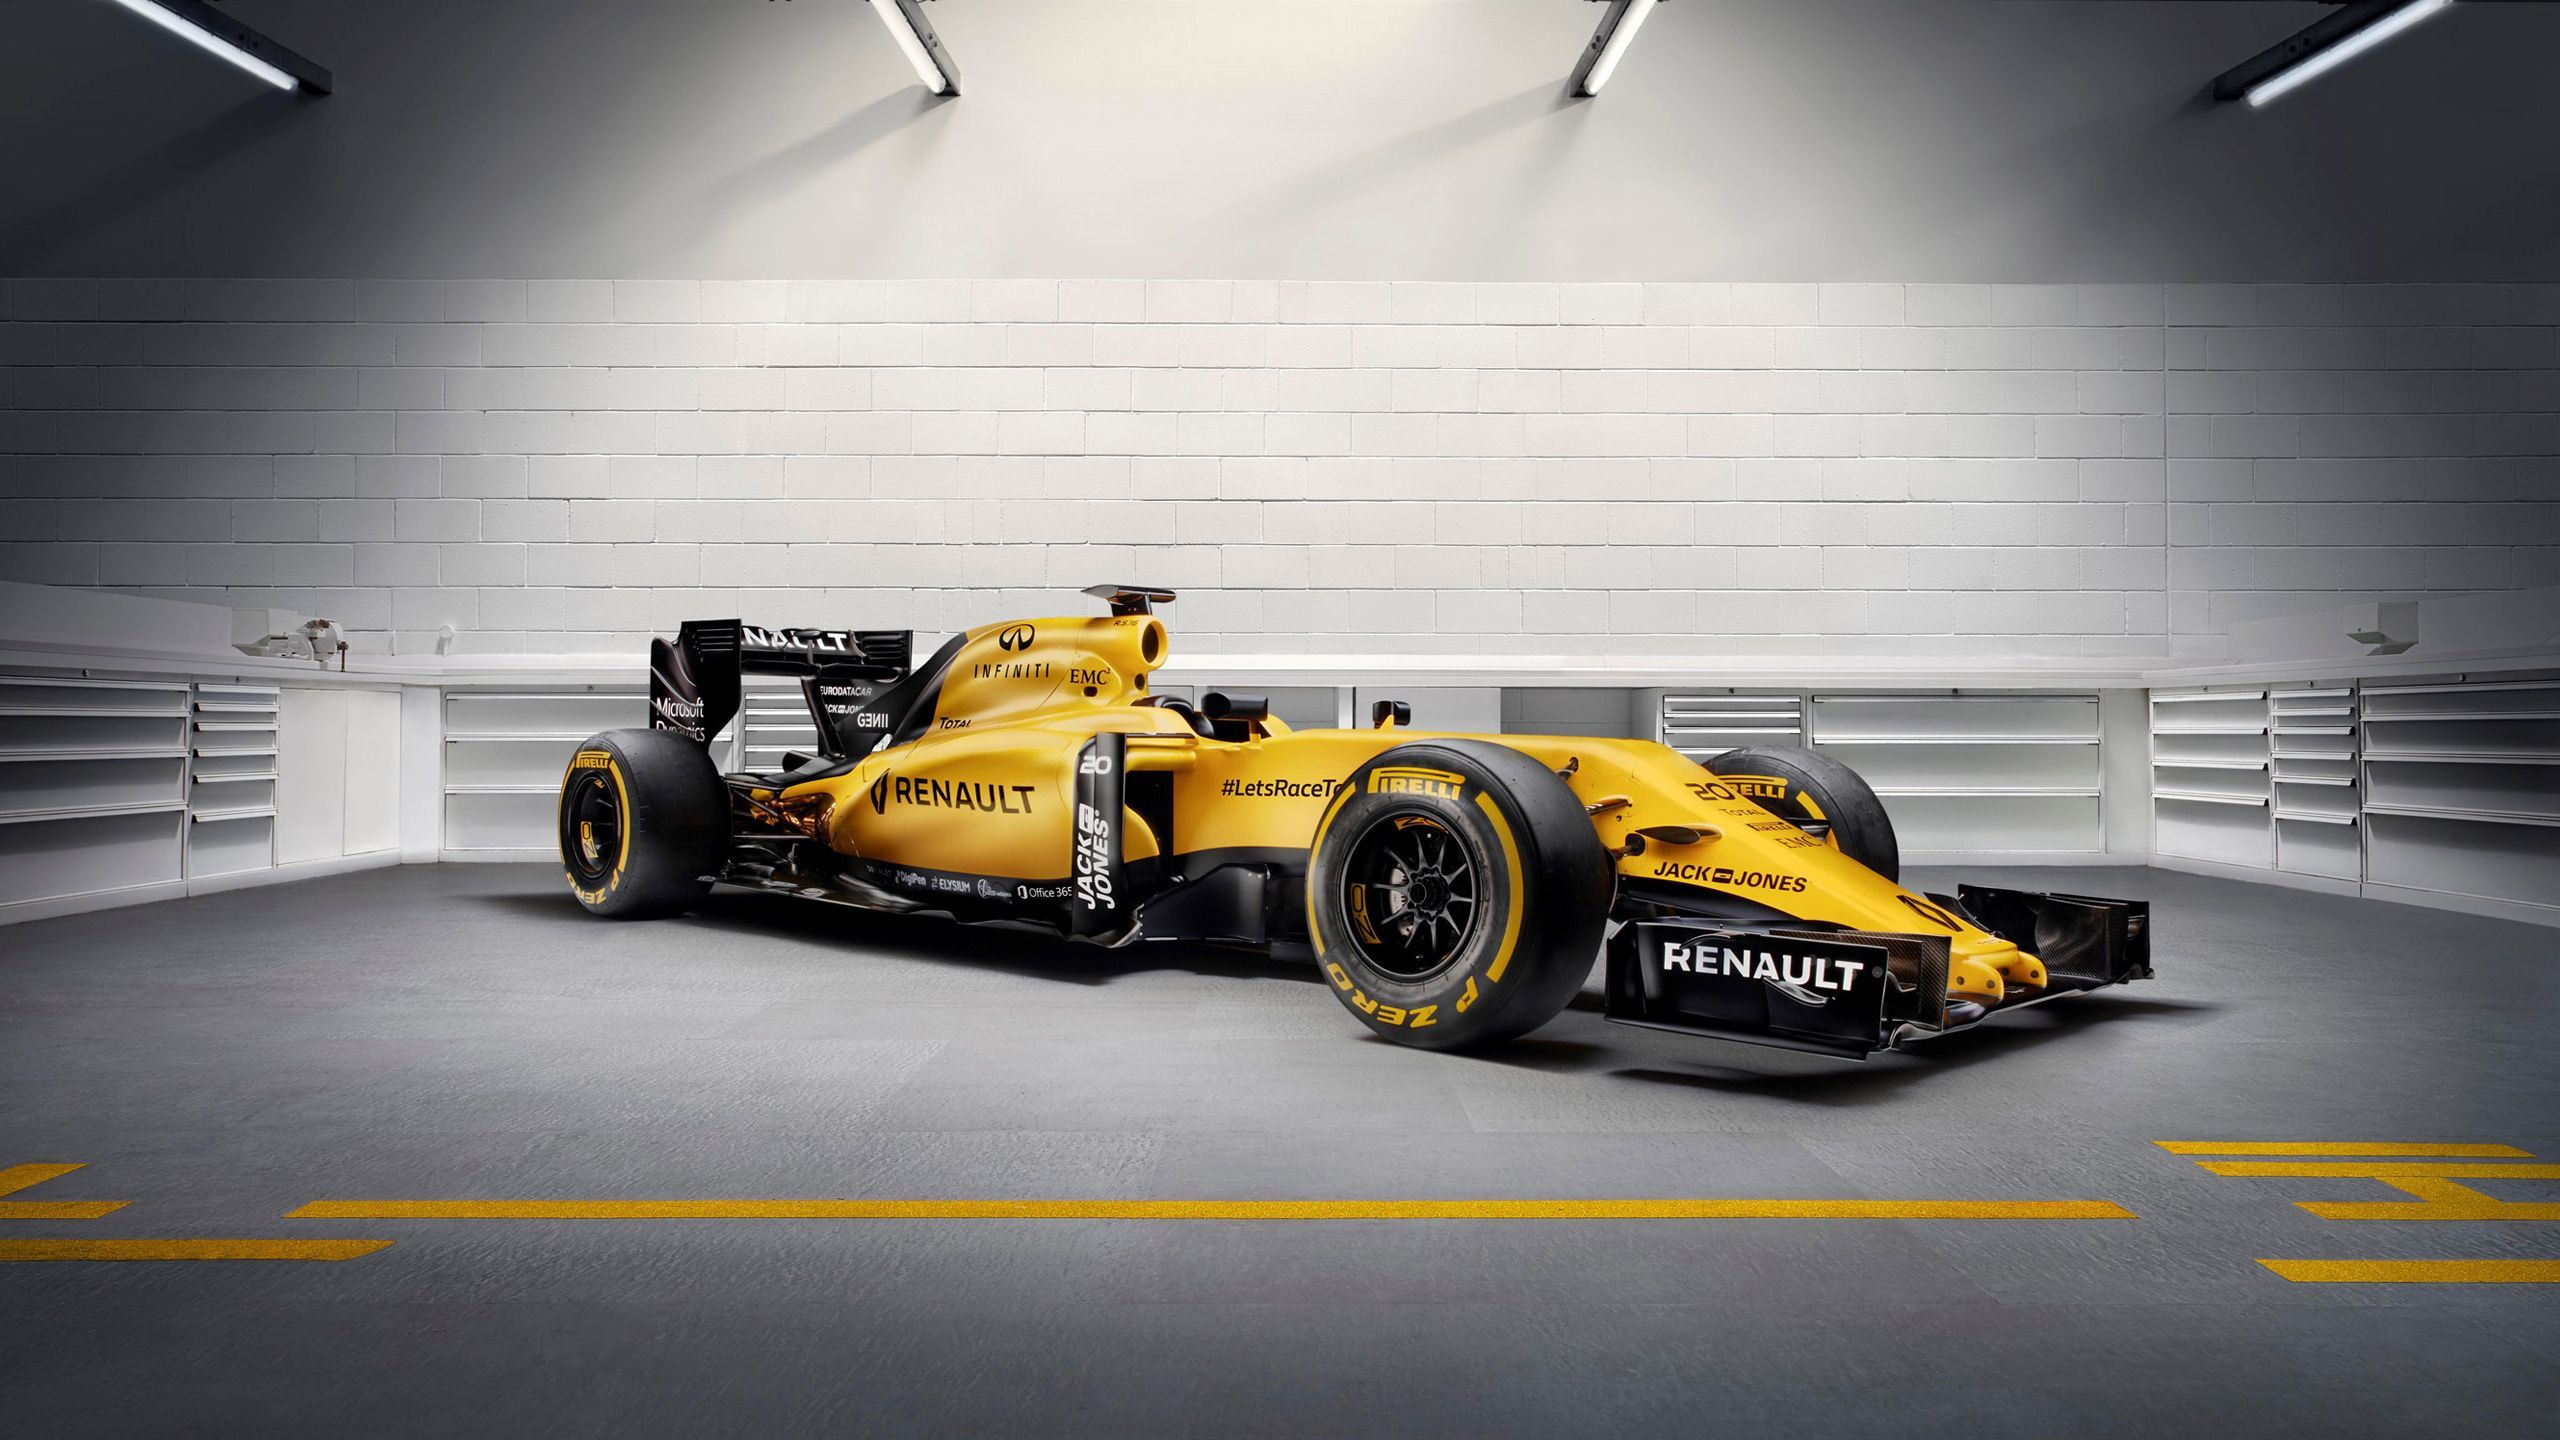 Formula 1 Hd: Formula HD Wallpapers And Backgrounds 2560×1440 Formula 1